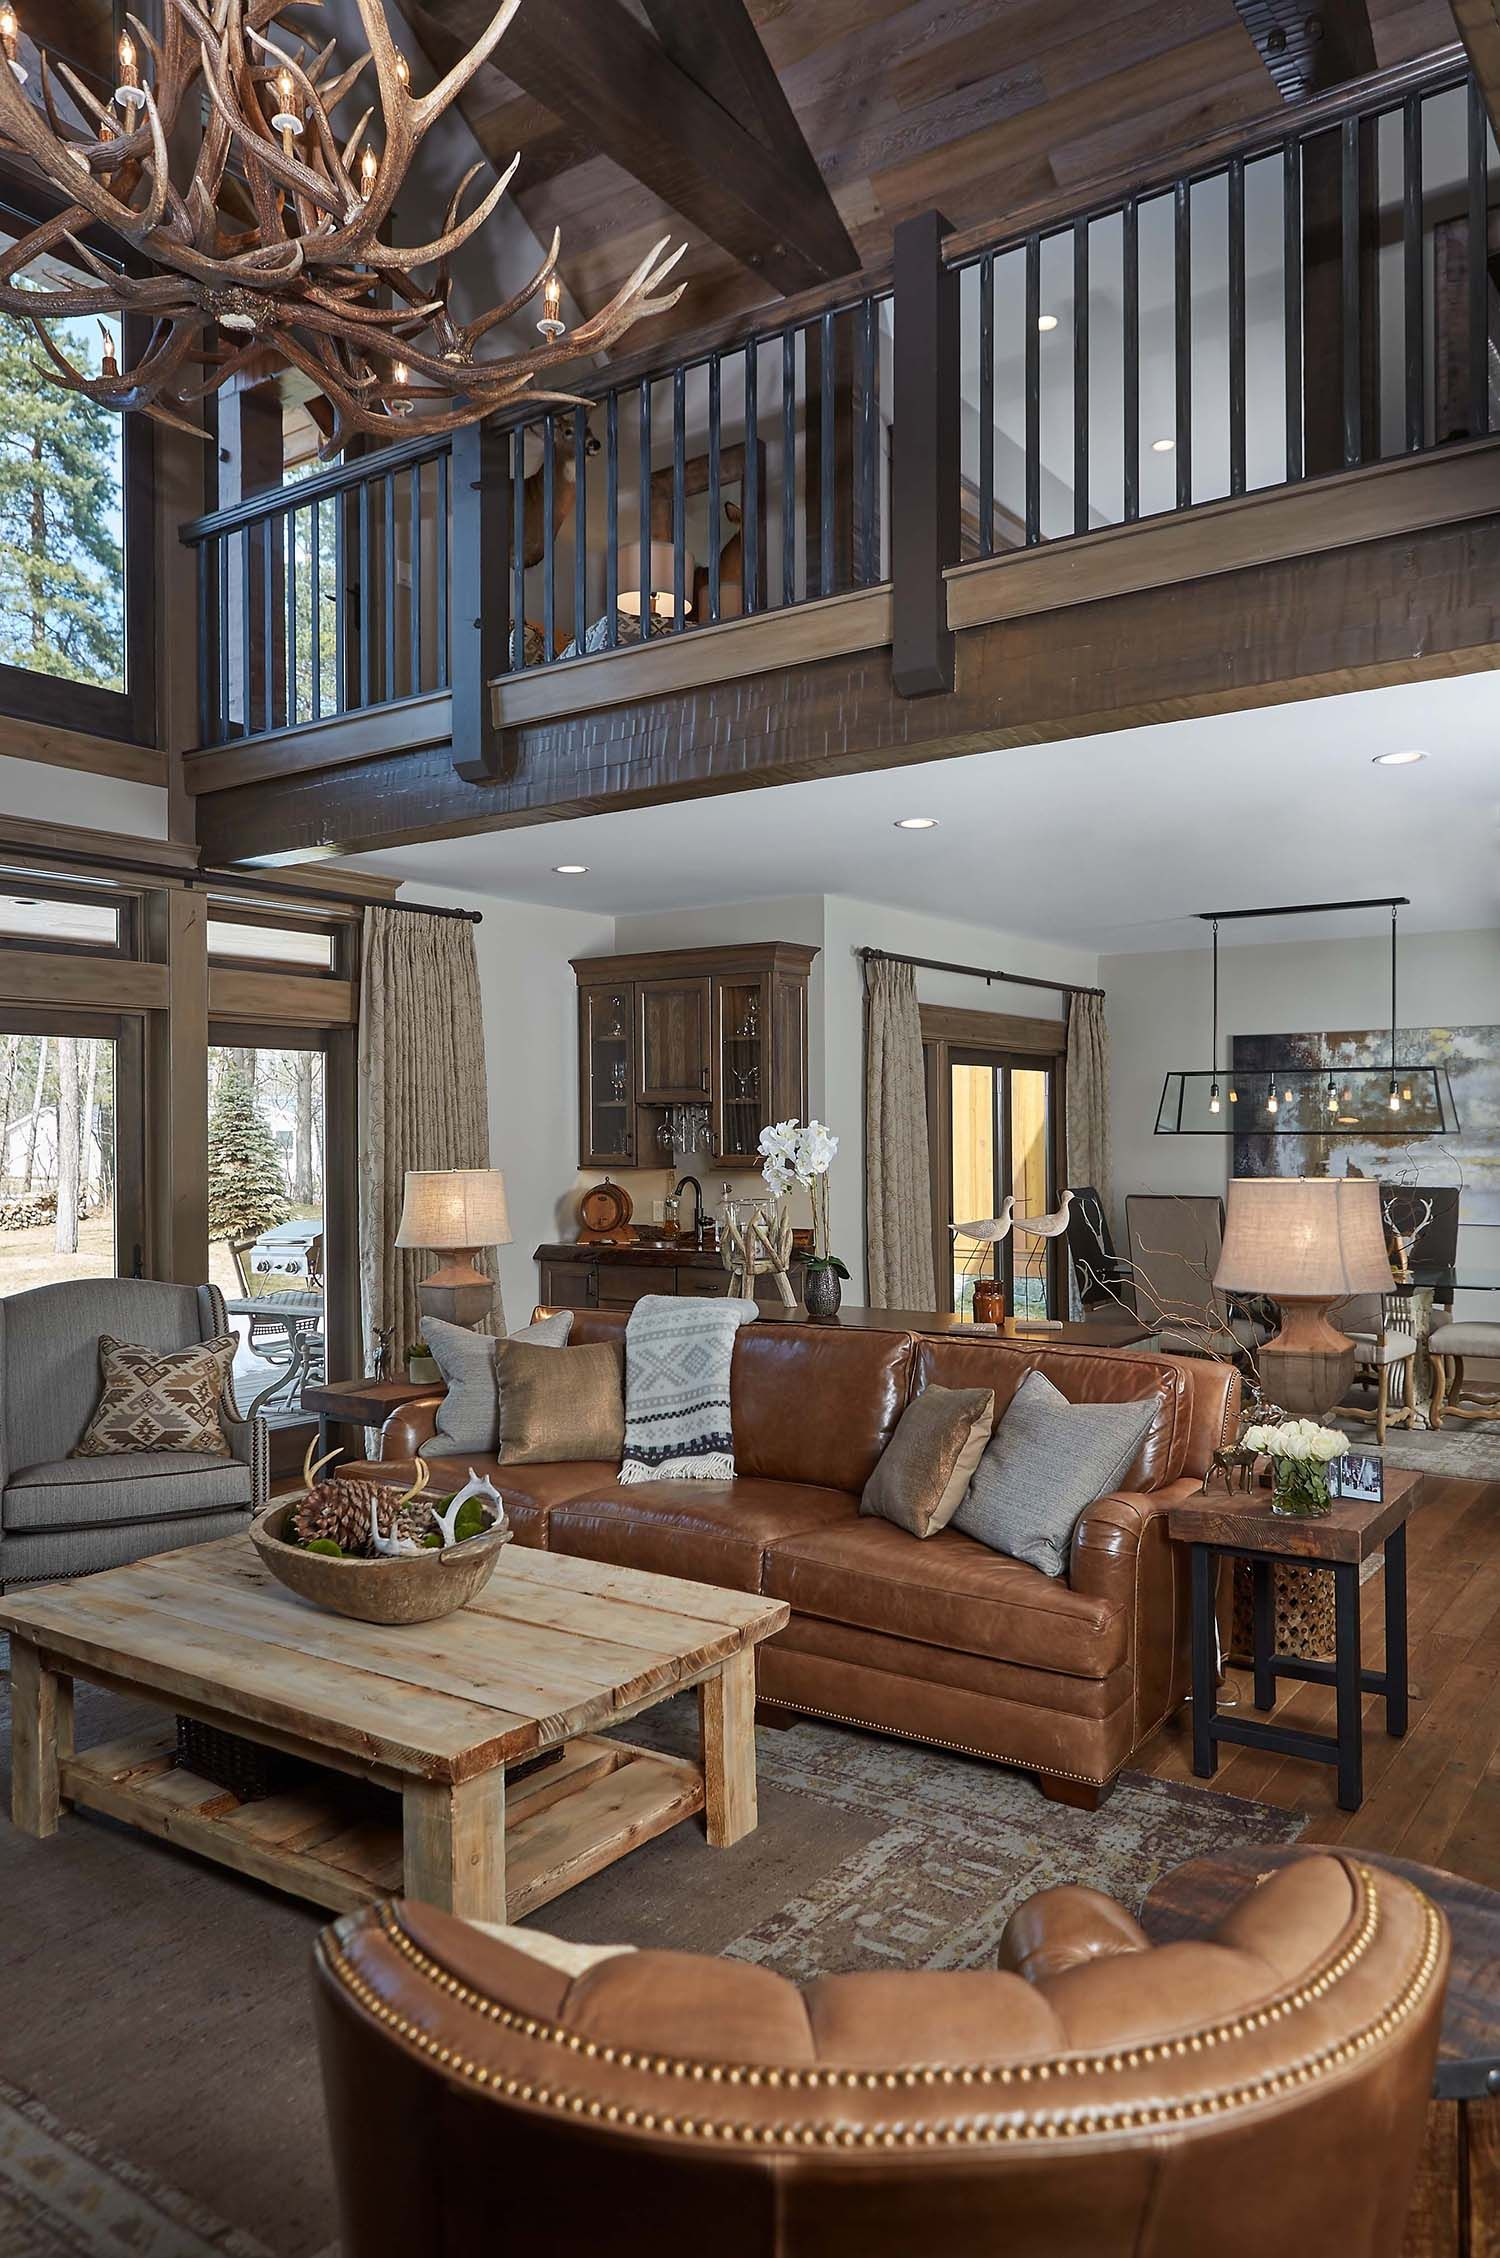 Delightful Rustic Feel Exuded By Northern Michigan Home Rustic Living Room Design Rustic Chic Living Room Rustic Home Design